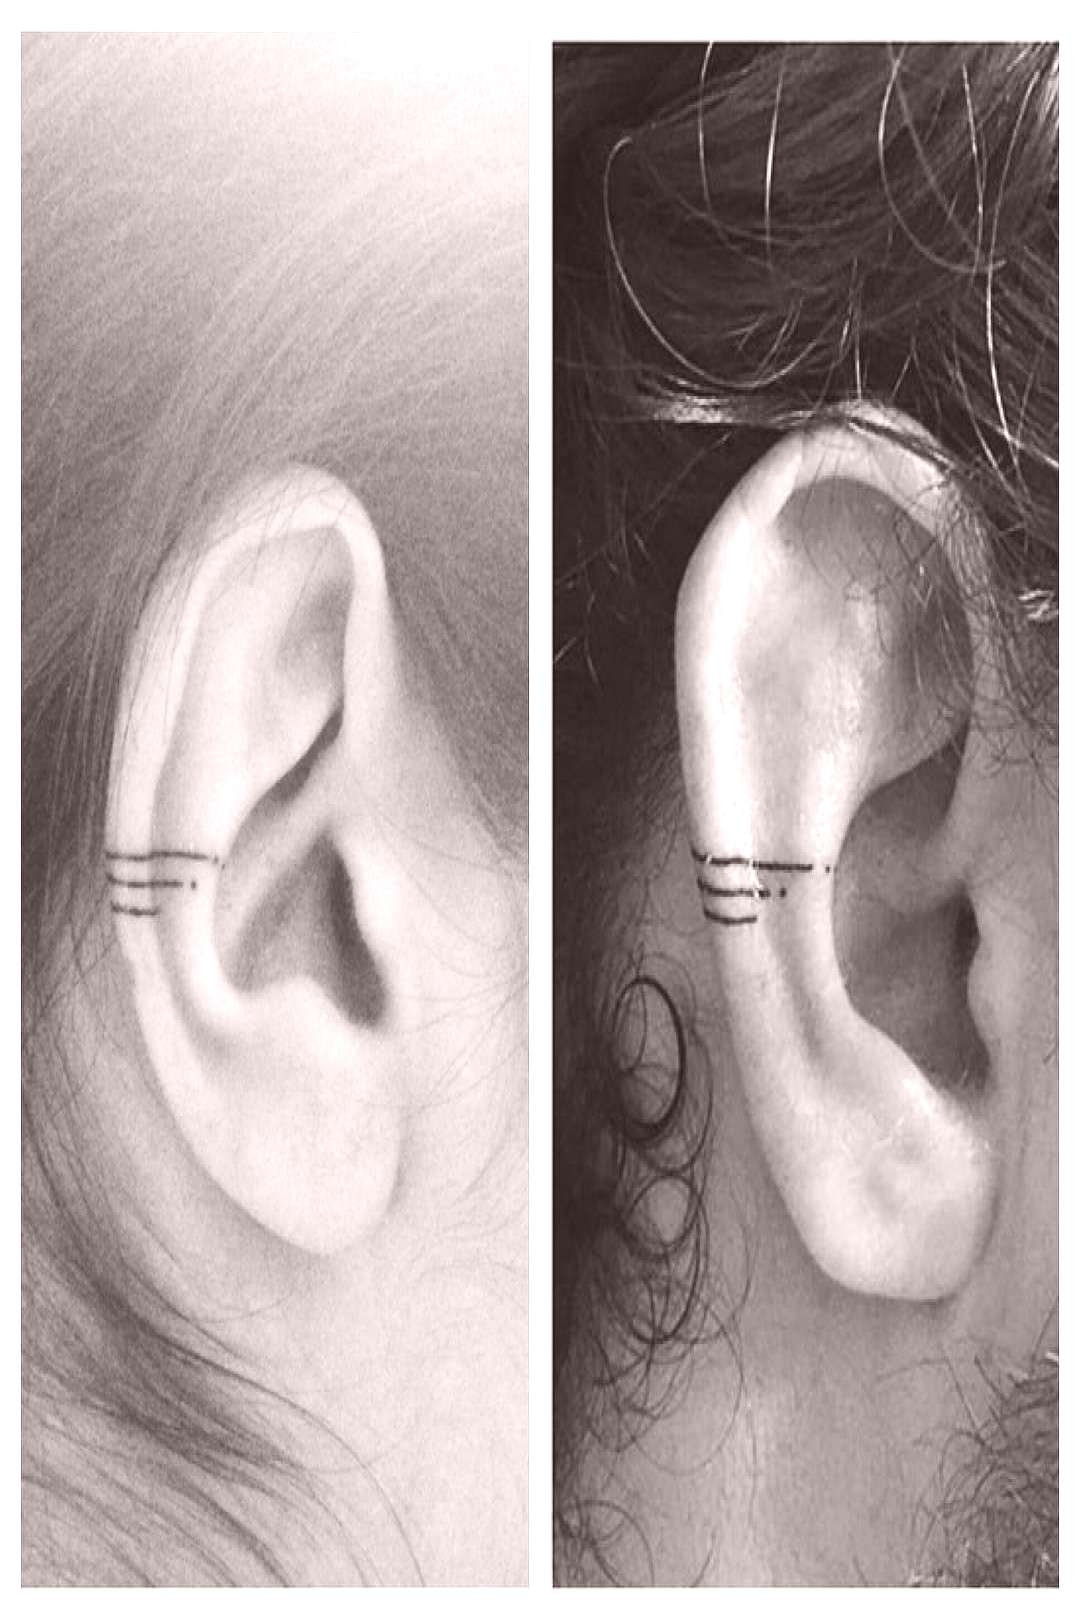 New trend conquers Instagram: Helix tattoos on the ear COSMOPOLITAN -  If the boring helix piercing